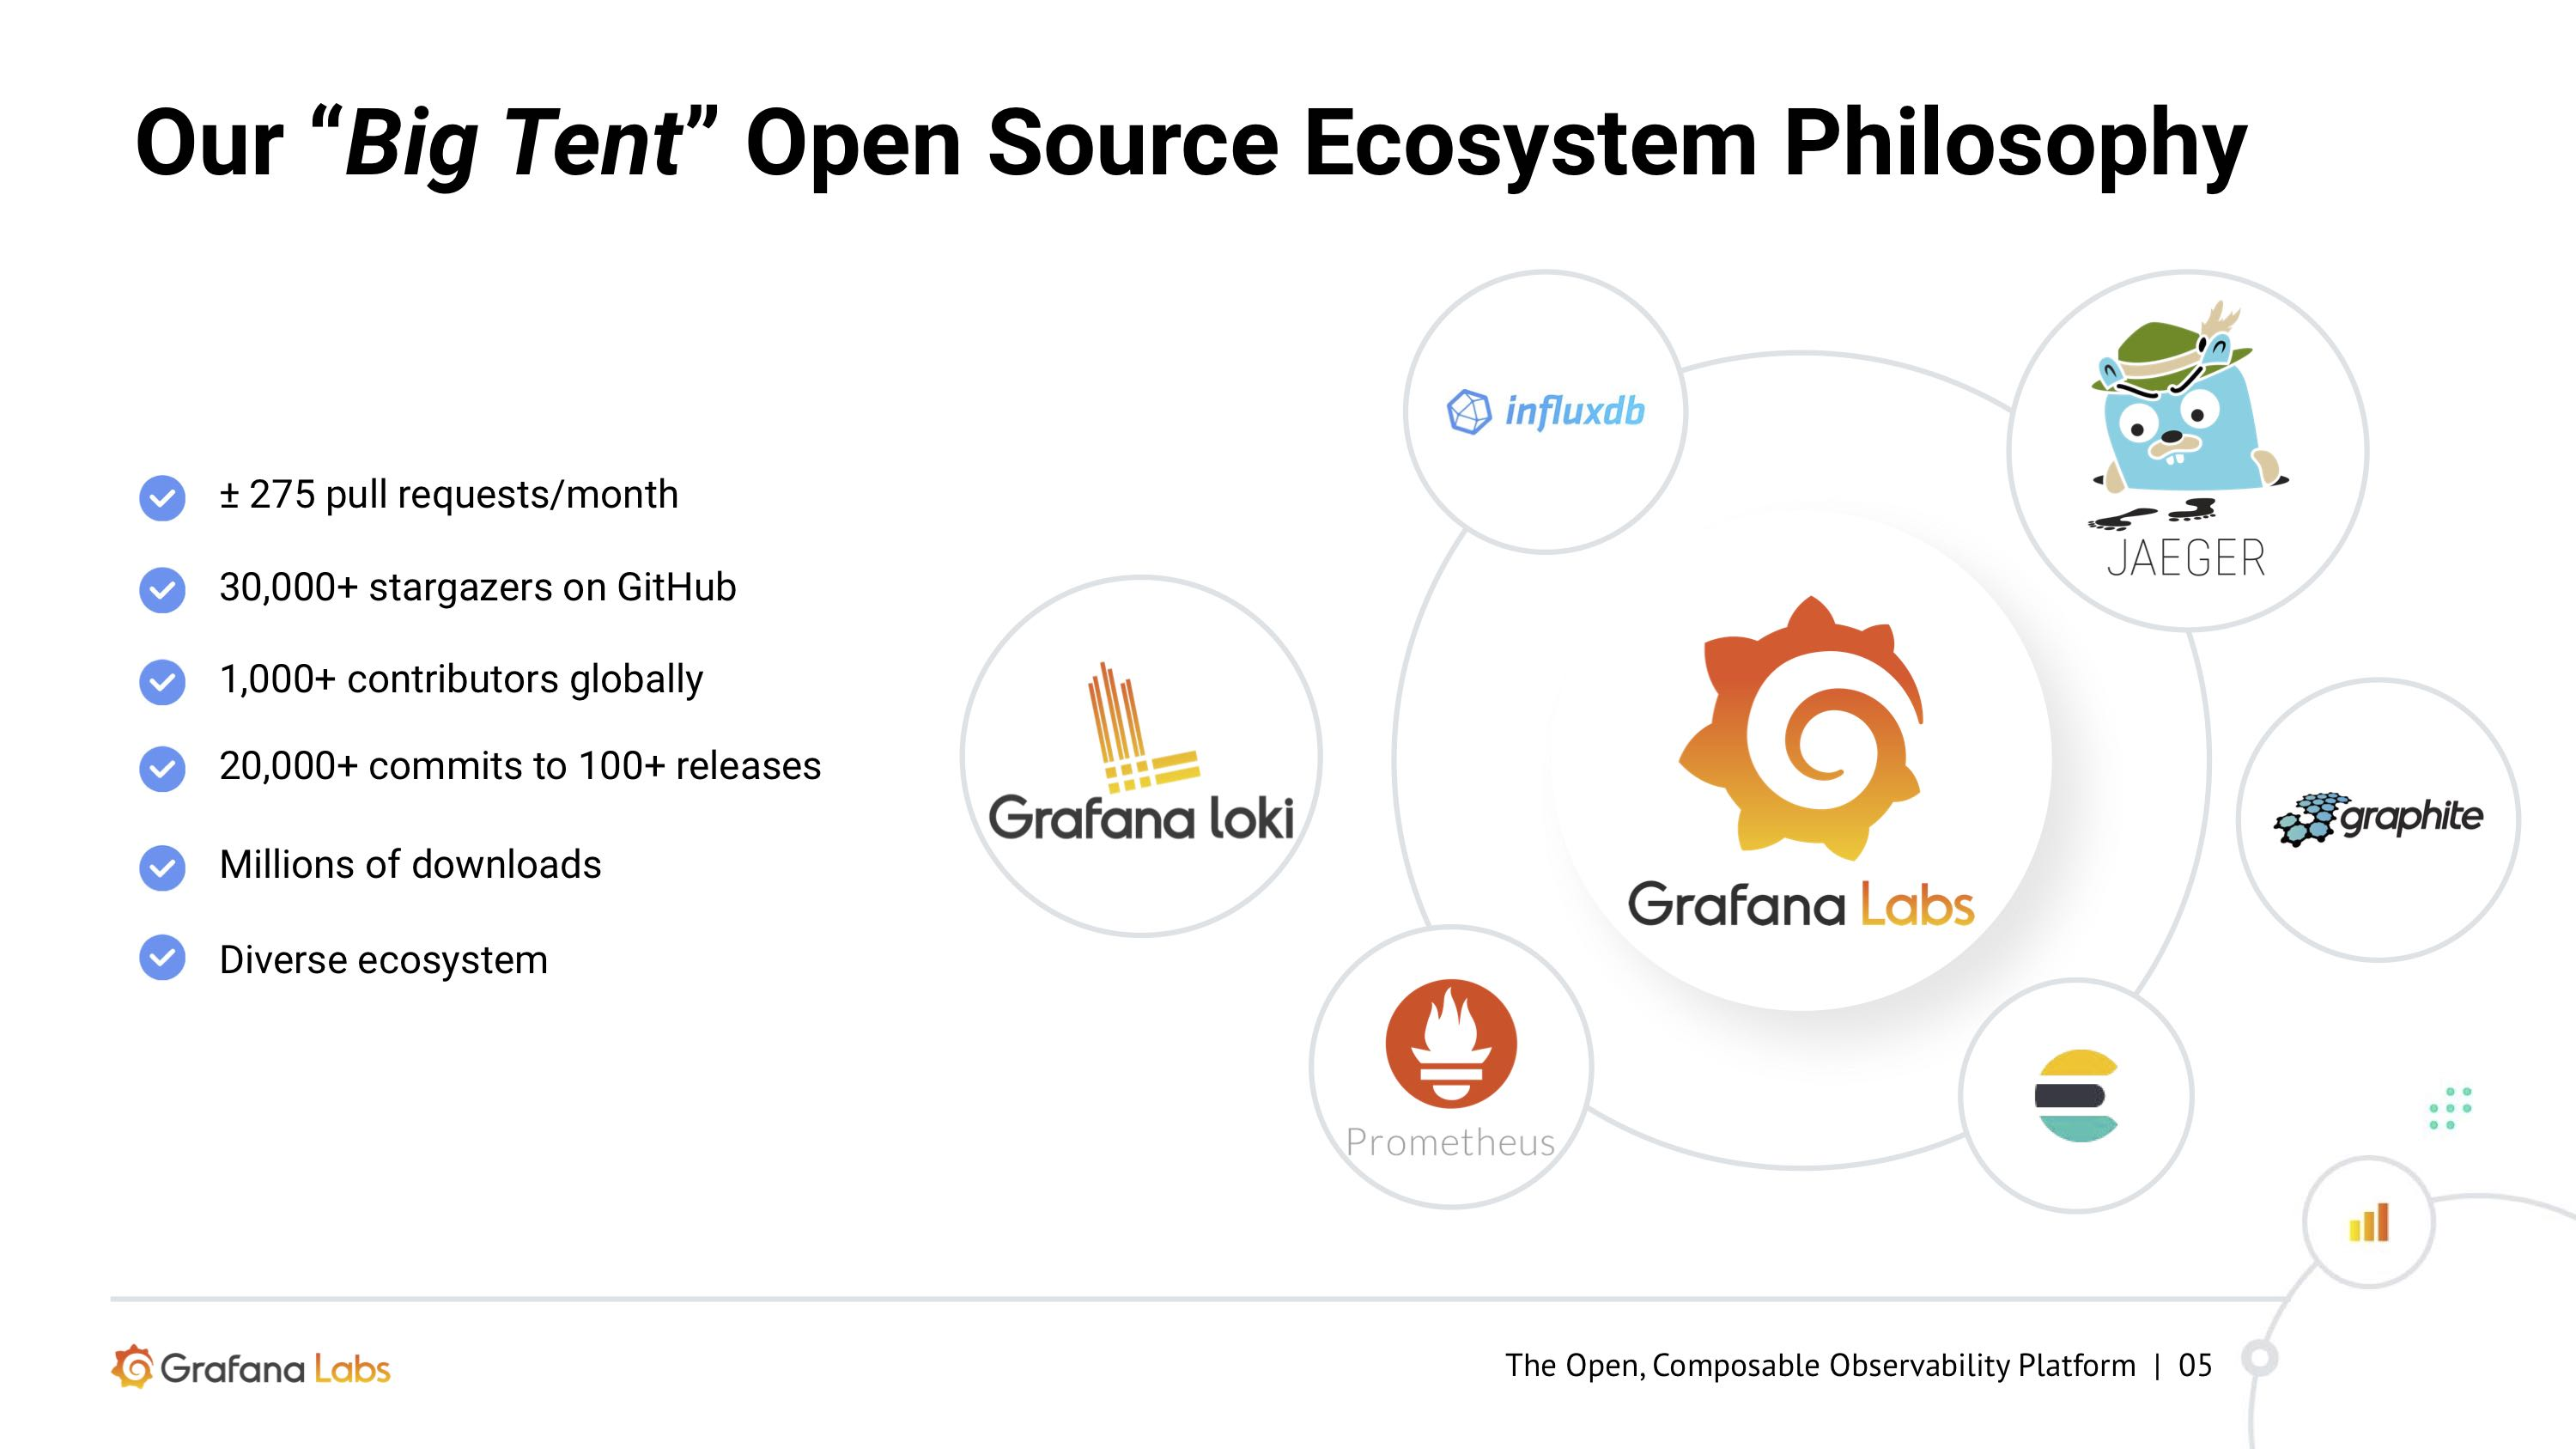 Our 'Big Tent' Open Source Ecosystem Philosophy